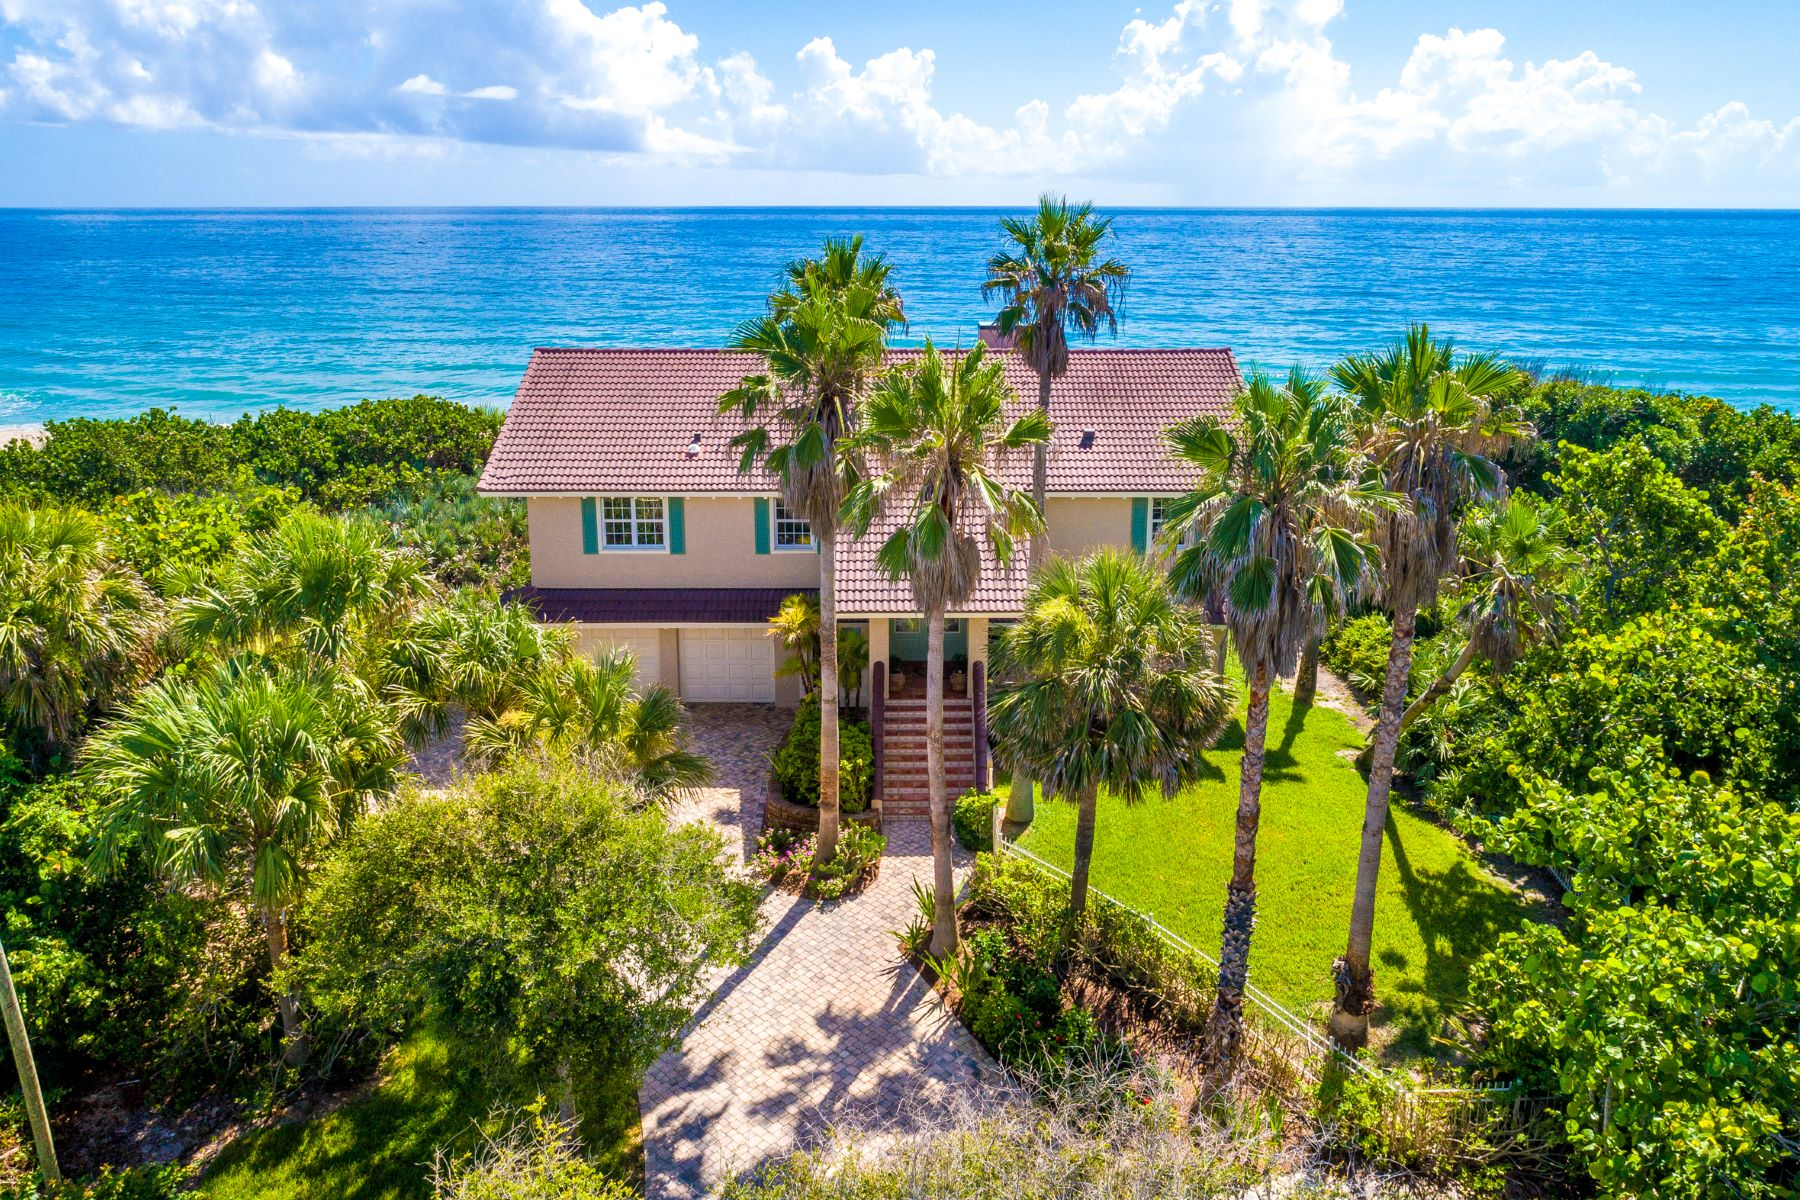 Property voor Verkoop op Completely Renovated Oceanfront Dream Home 9515 S Highway A1A Melbourne Beach, Florida 32951 Verenigde Staten